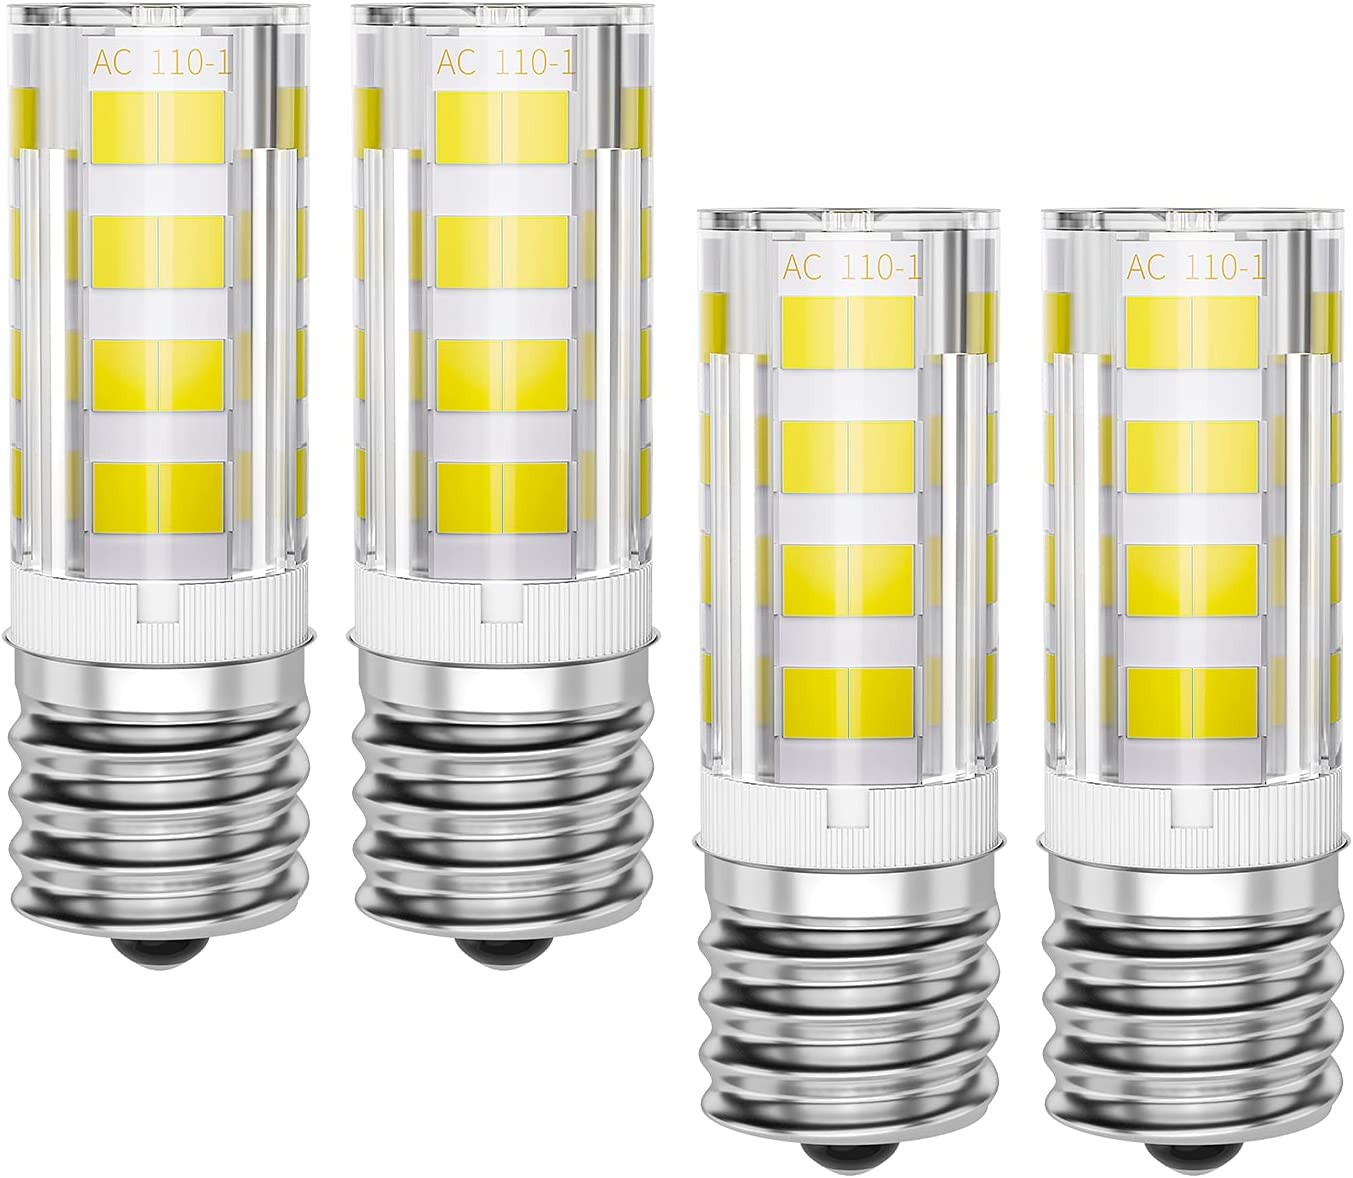 SHINESTAR Bright E17 LED Microwave Super beauty Bombing free shipping product restock quality top 40W Bulbs Light Equivalent